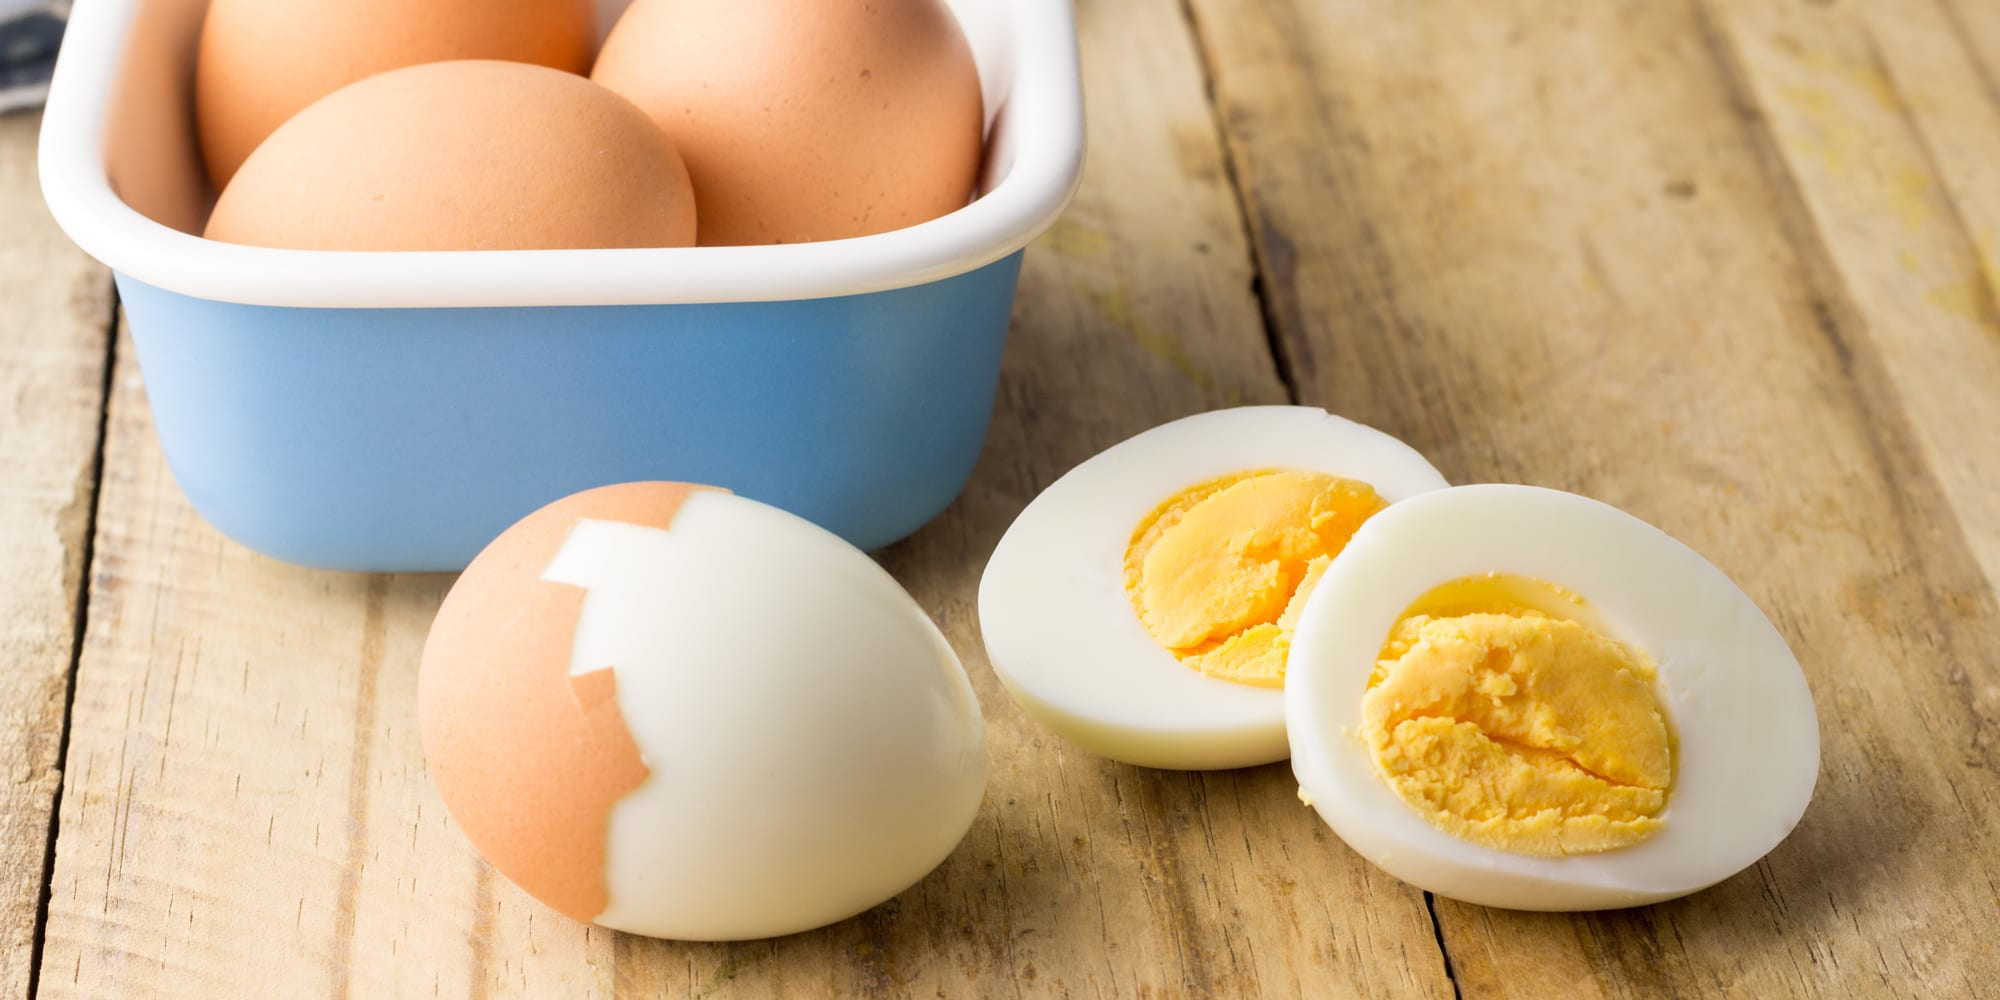 What Is The Boiled Egg Diet And Can You Lose Weight With It?